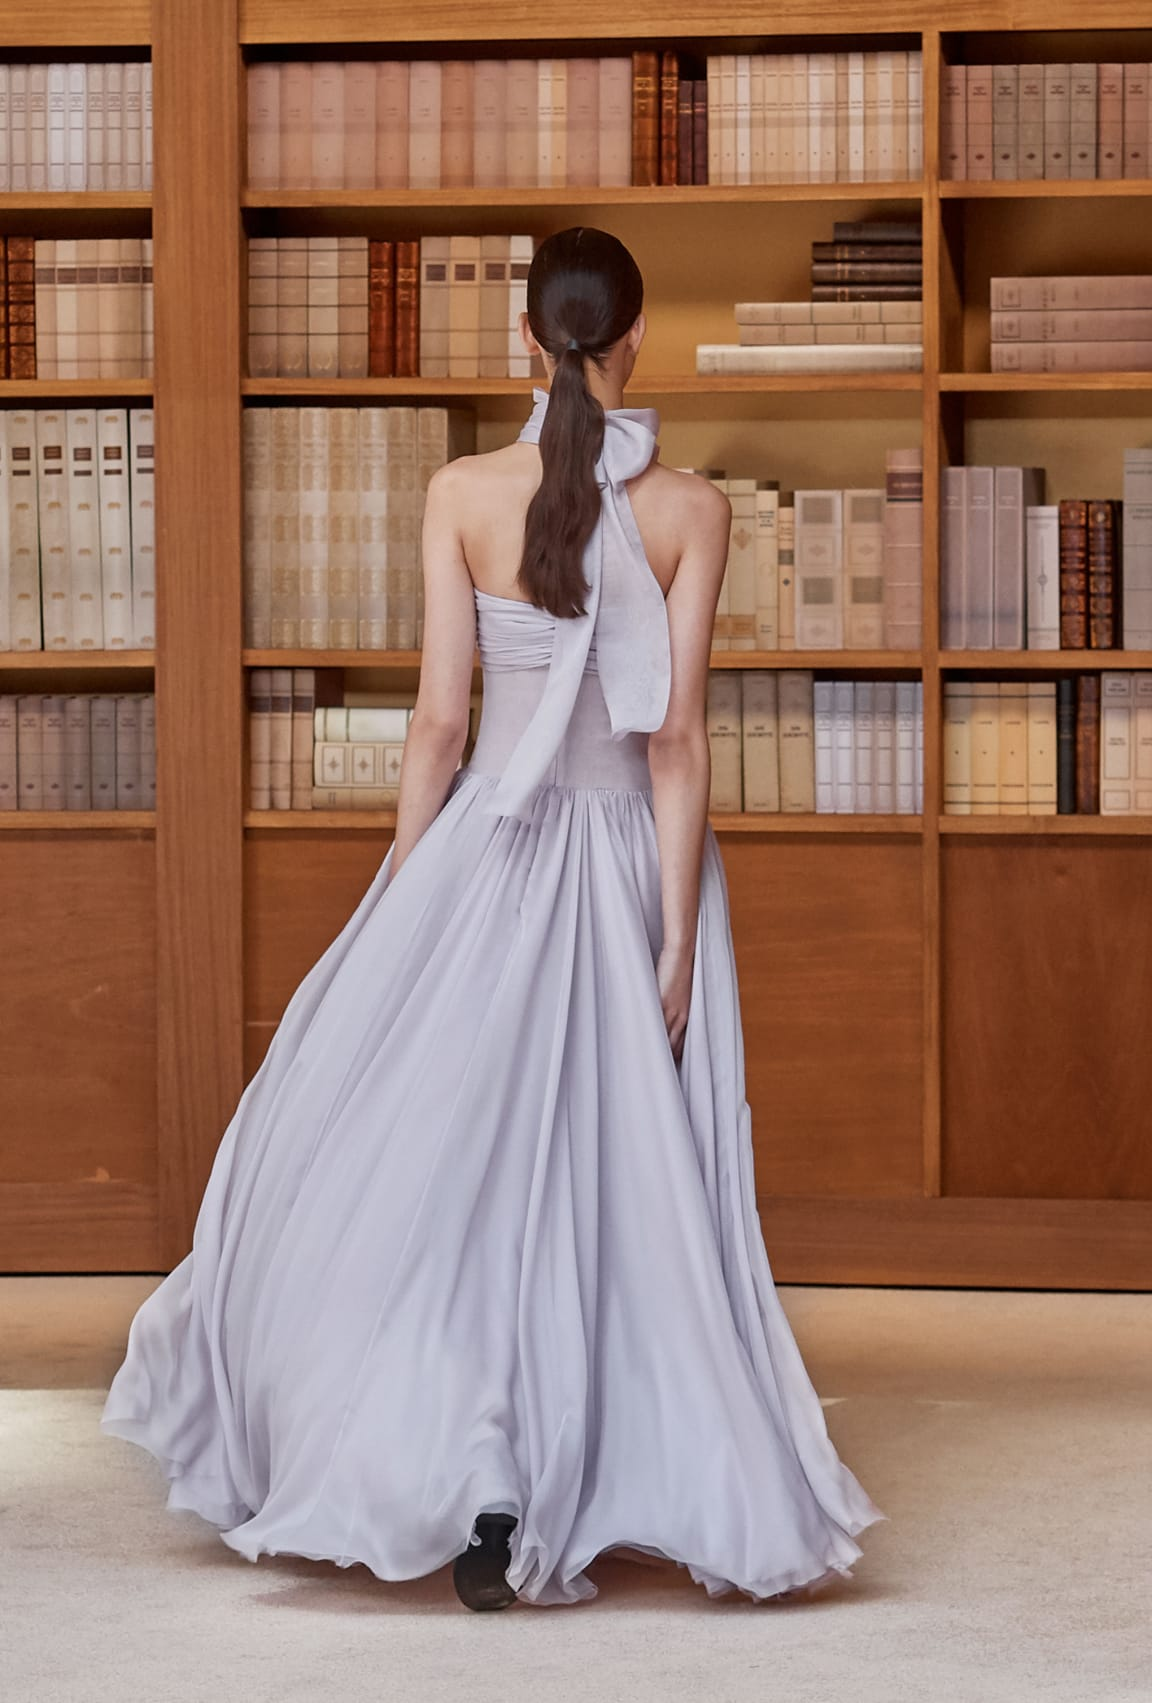 View 4 - Look 34 - Fall-Winter 2019/20 Haute-Couture - see full sized version